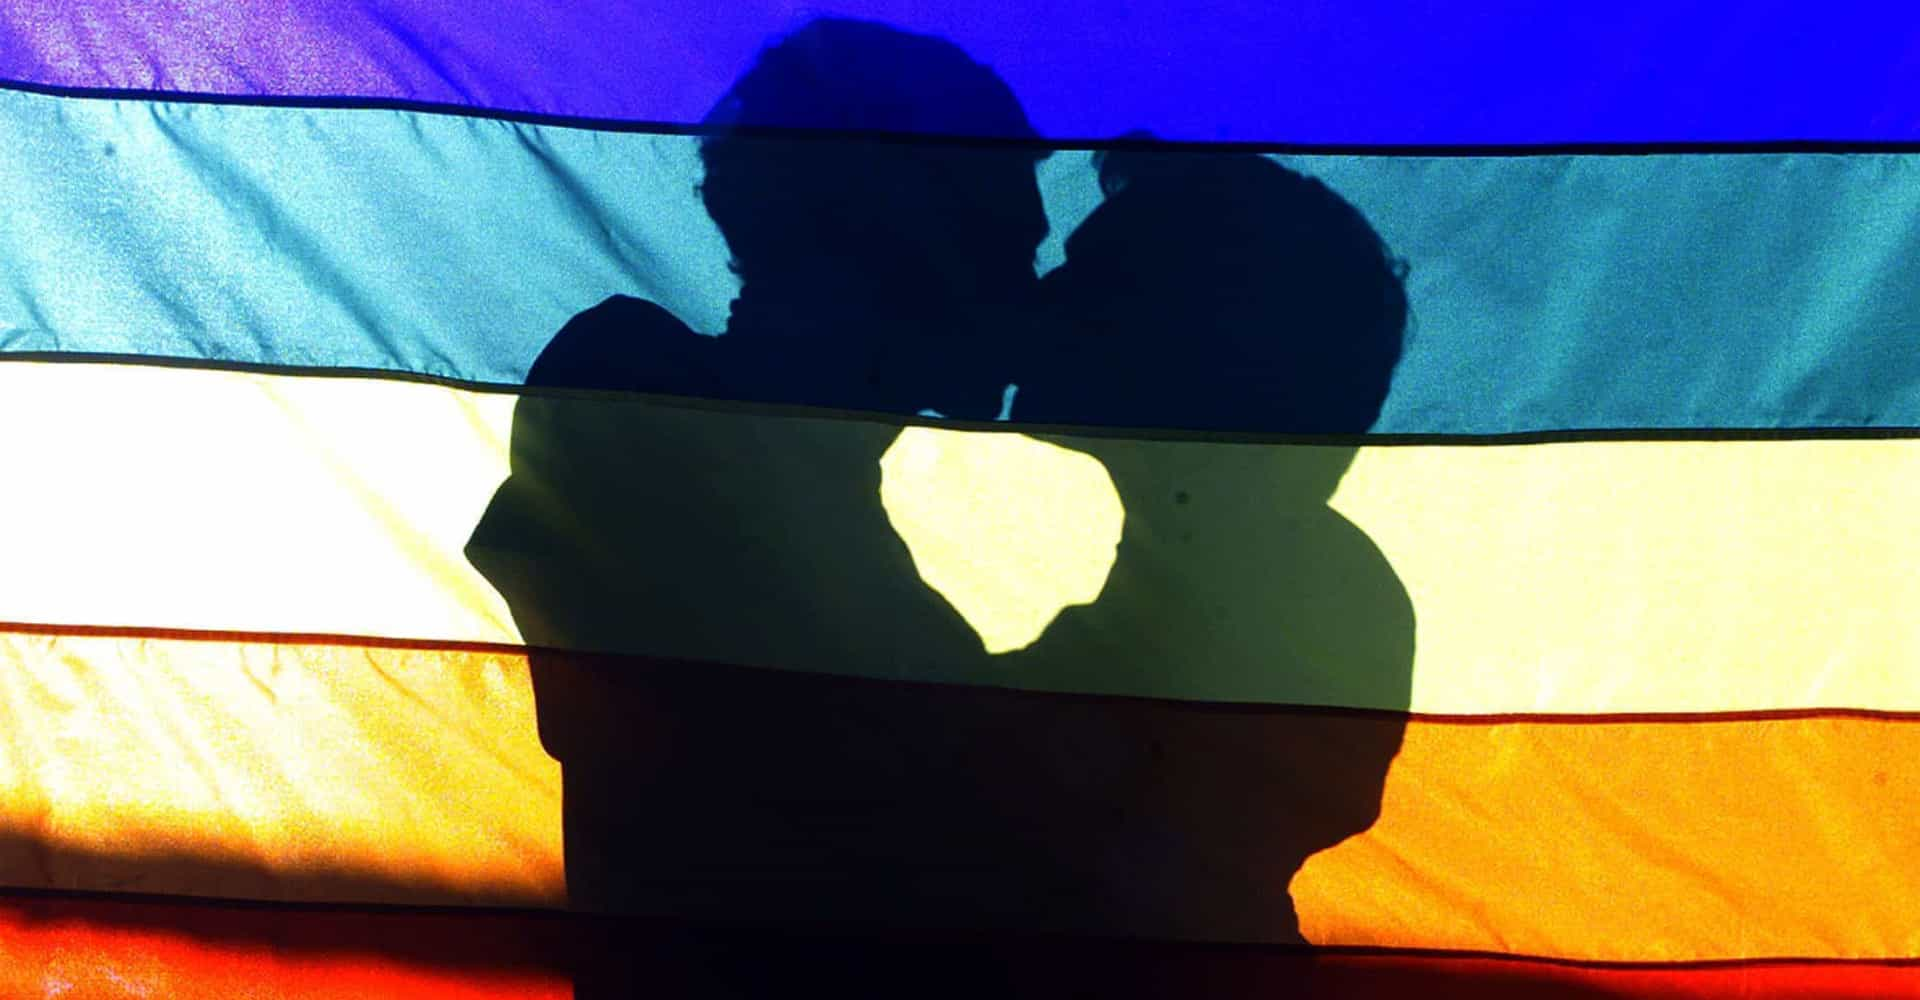 Pucker up: The queer kiss as protest